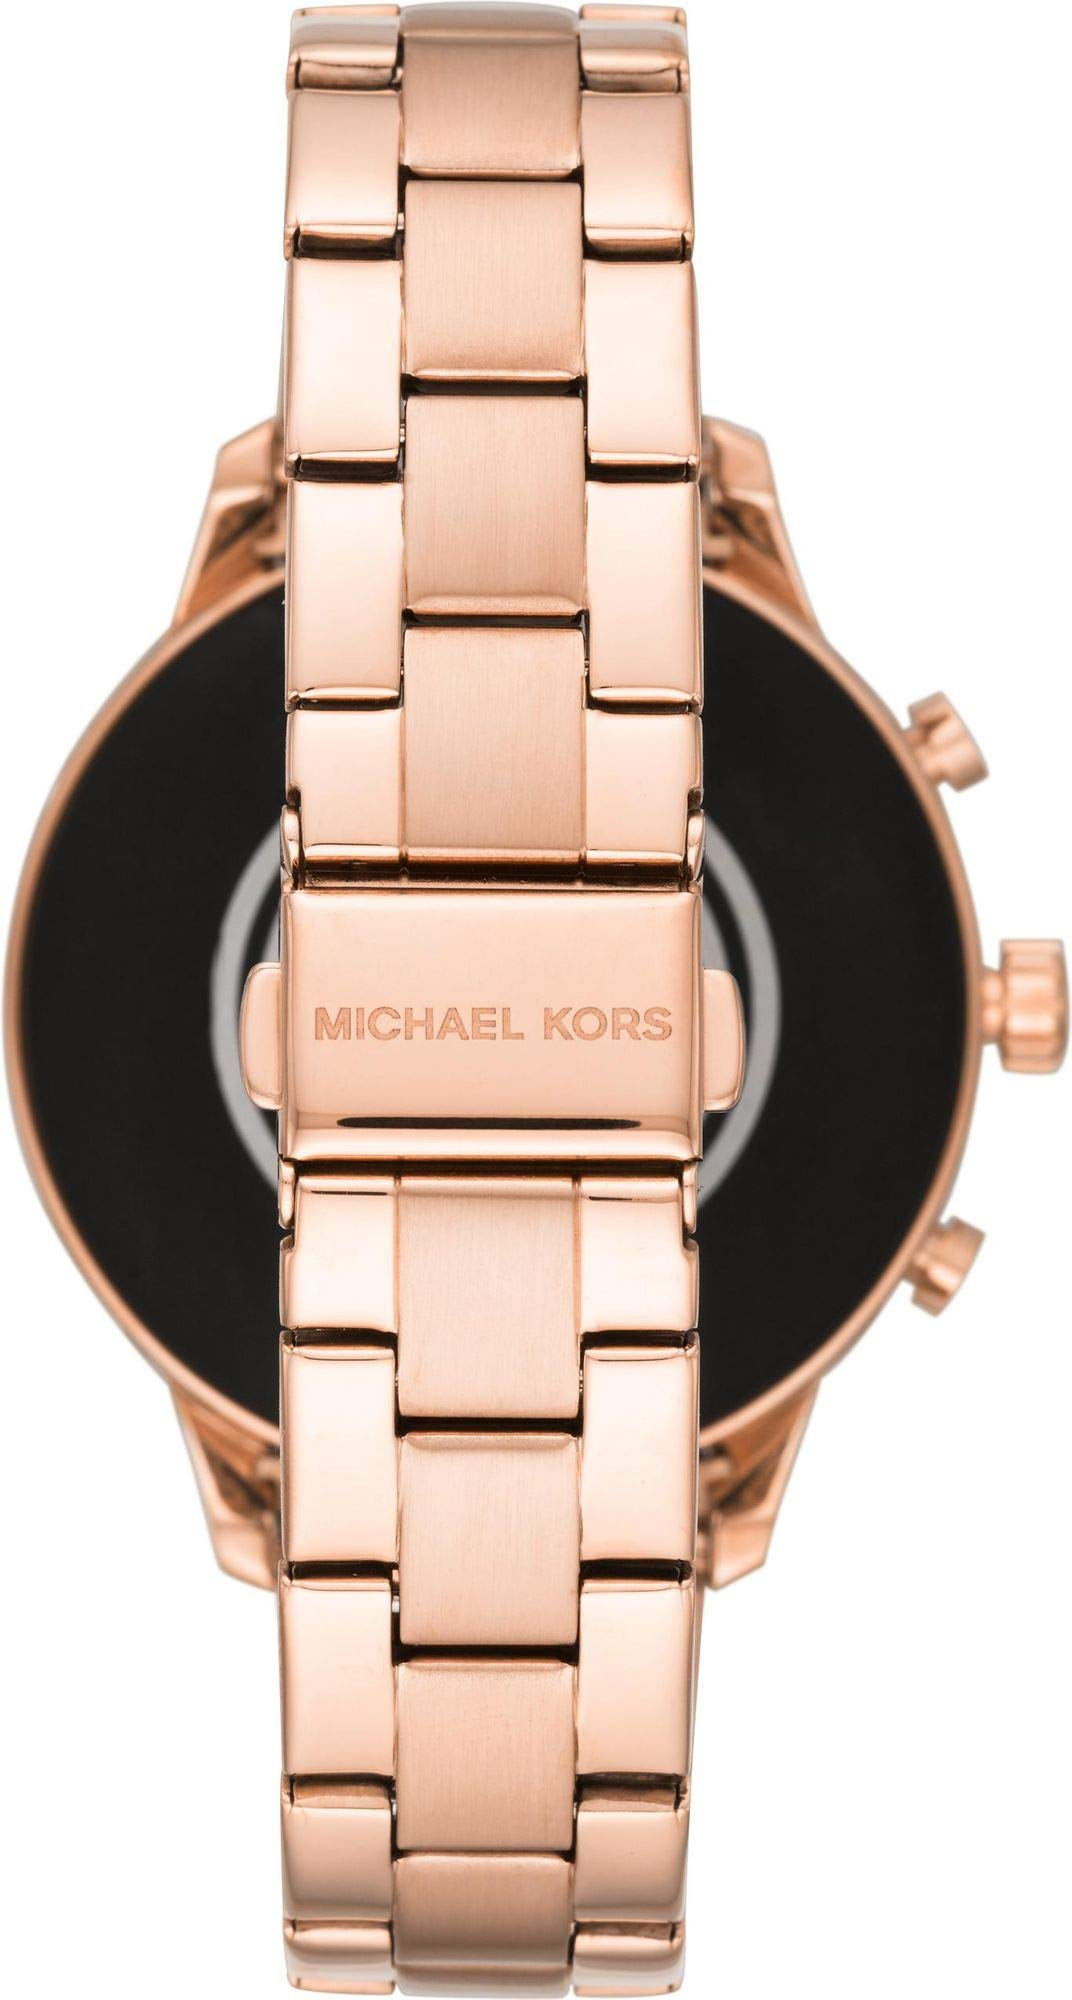 Michael-Kors-Damen-Digital-Smart-Watch-Armbanduhr-mit-Edelstahl-Armband-MKT5052